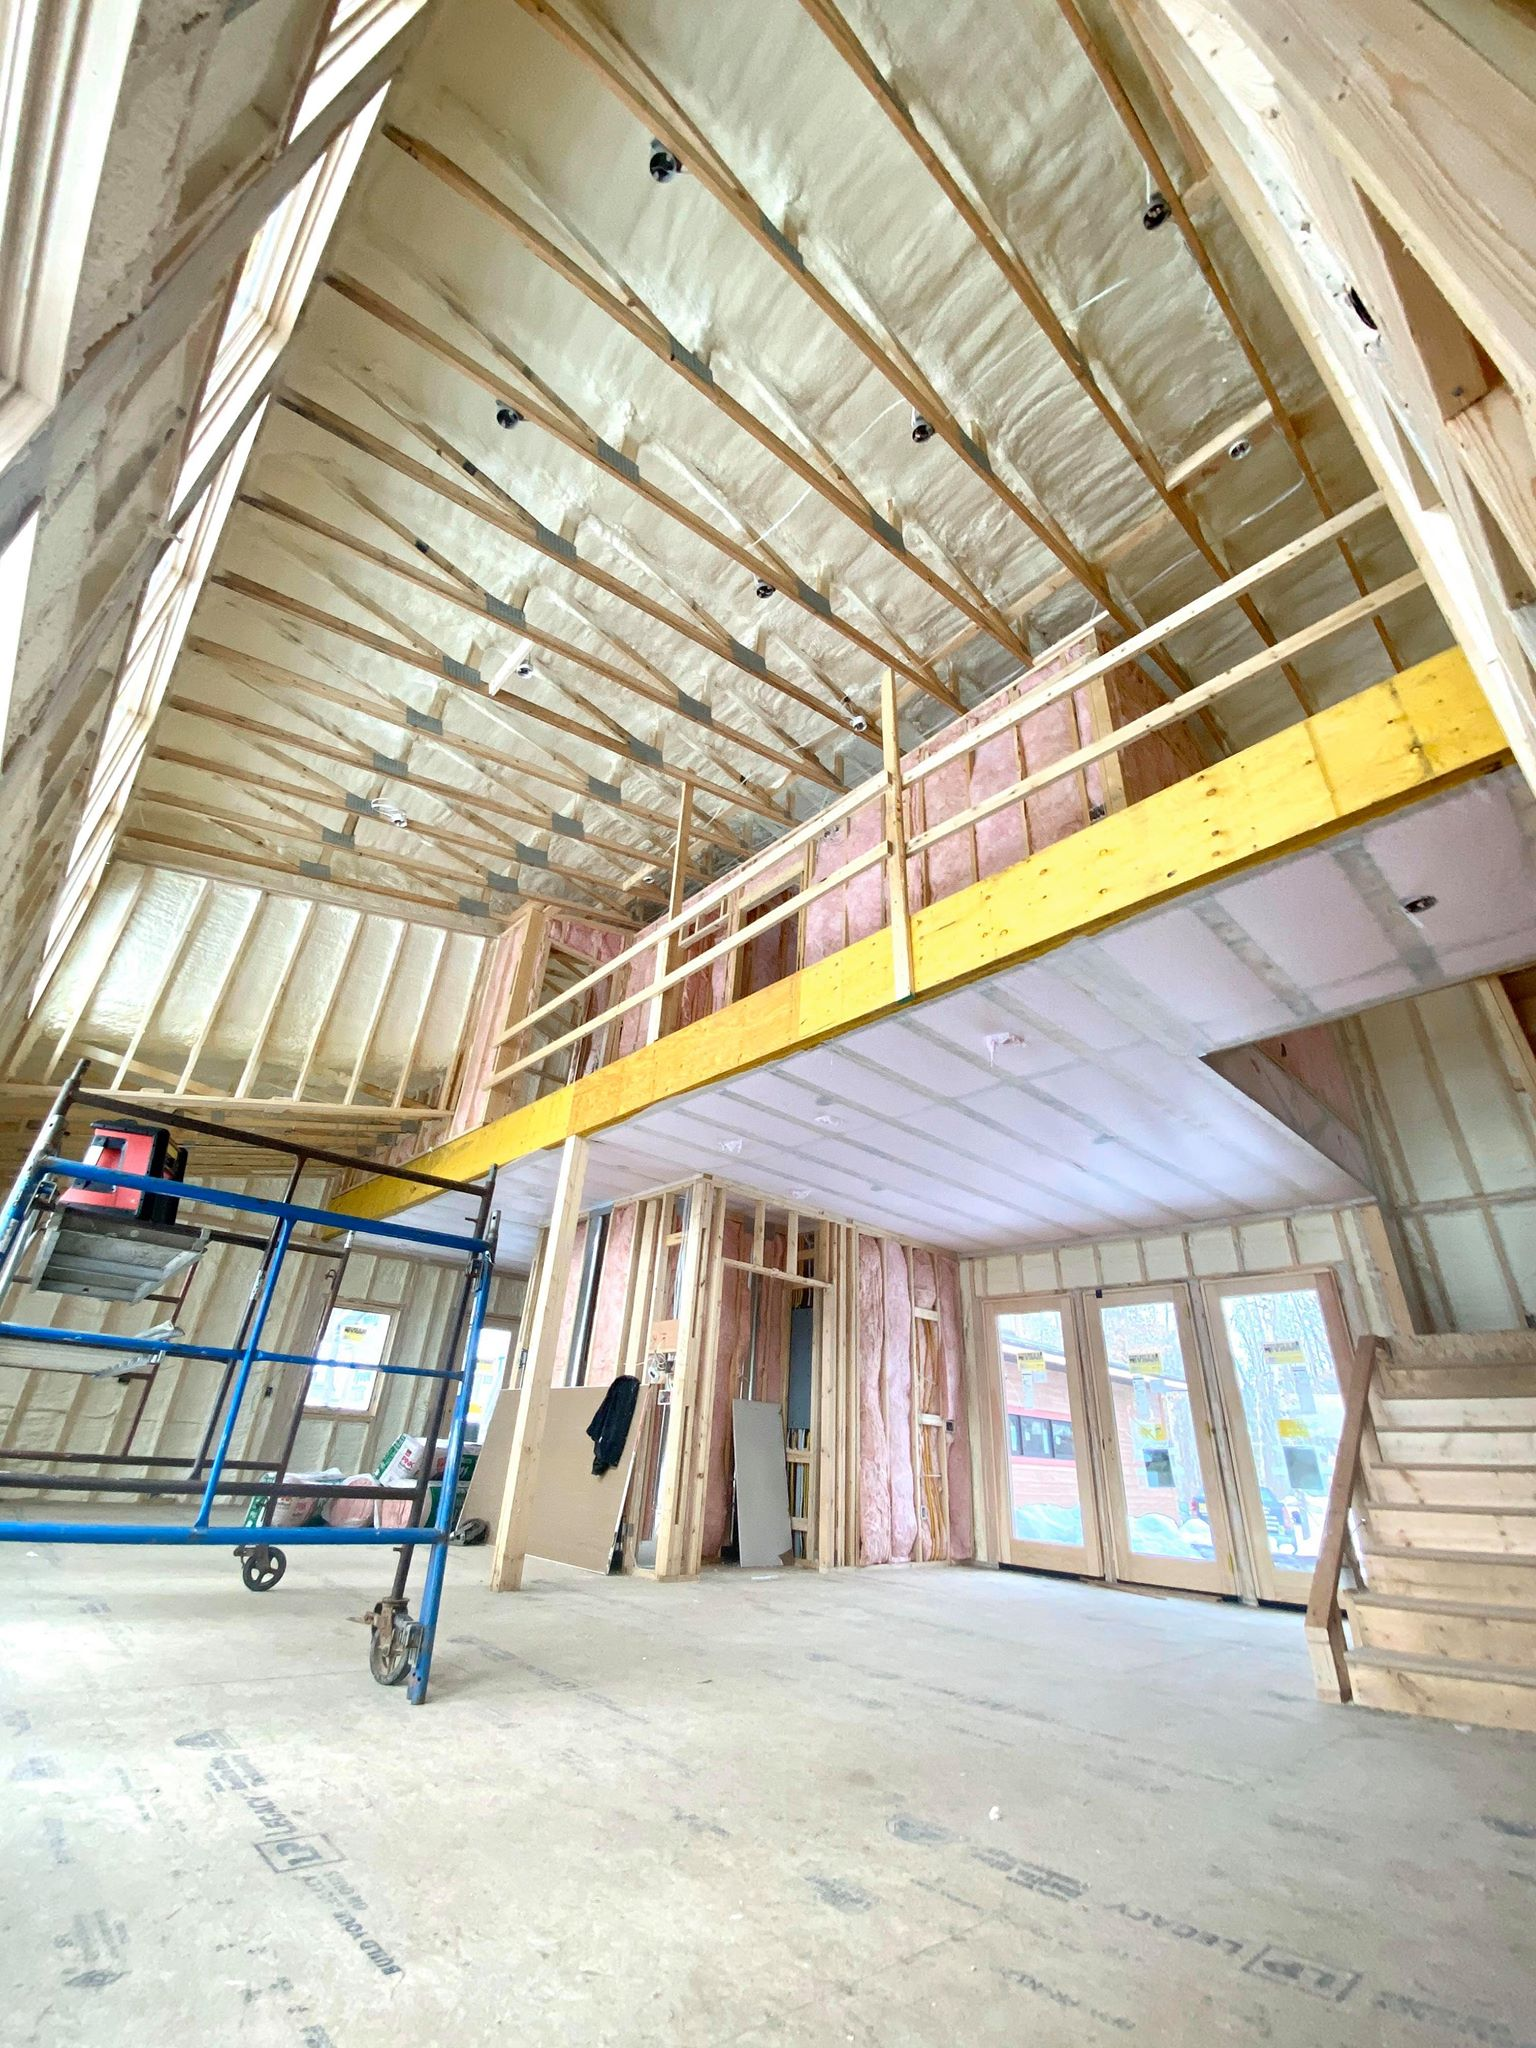 closed cell Spray Foam Insulation Pine lake Backus Spray Foam Insulation, Sound Insulation, and Fiberglass Pine Lake Northland Spray Foam Insulation Longville MN